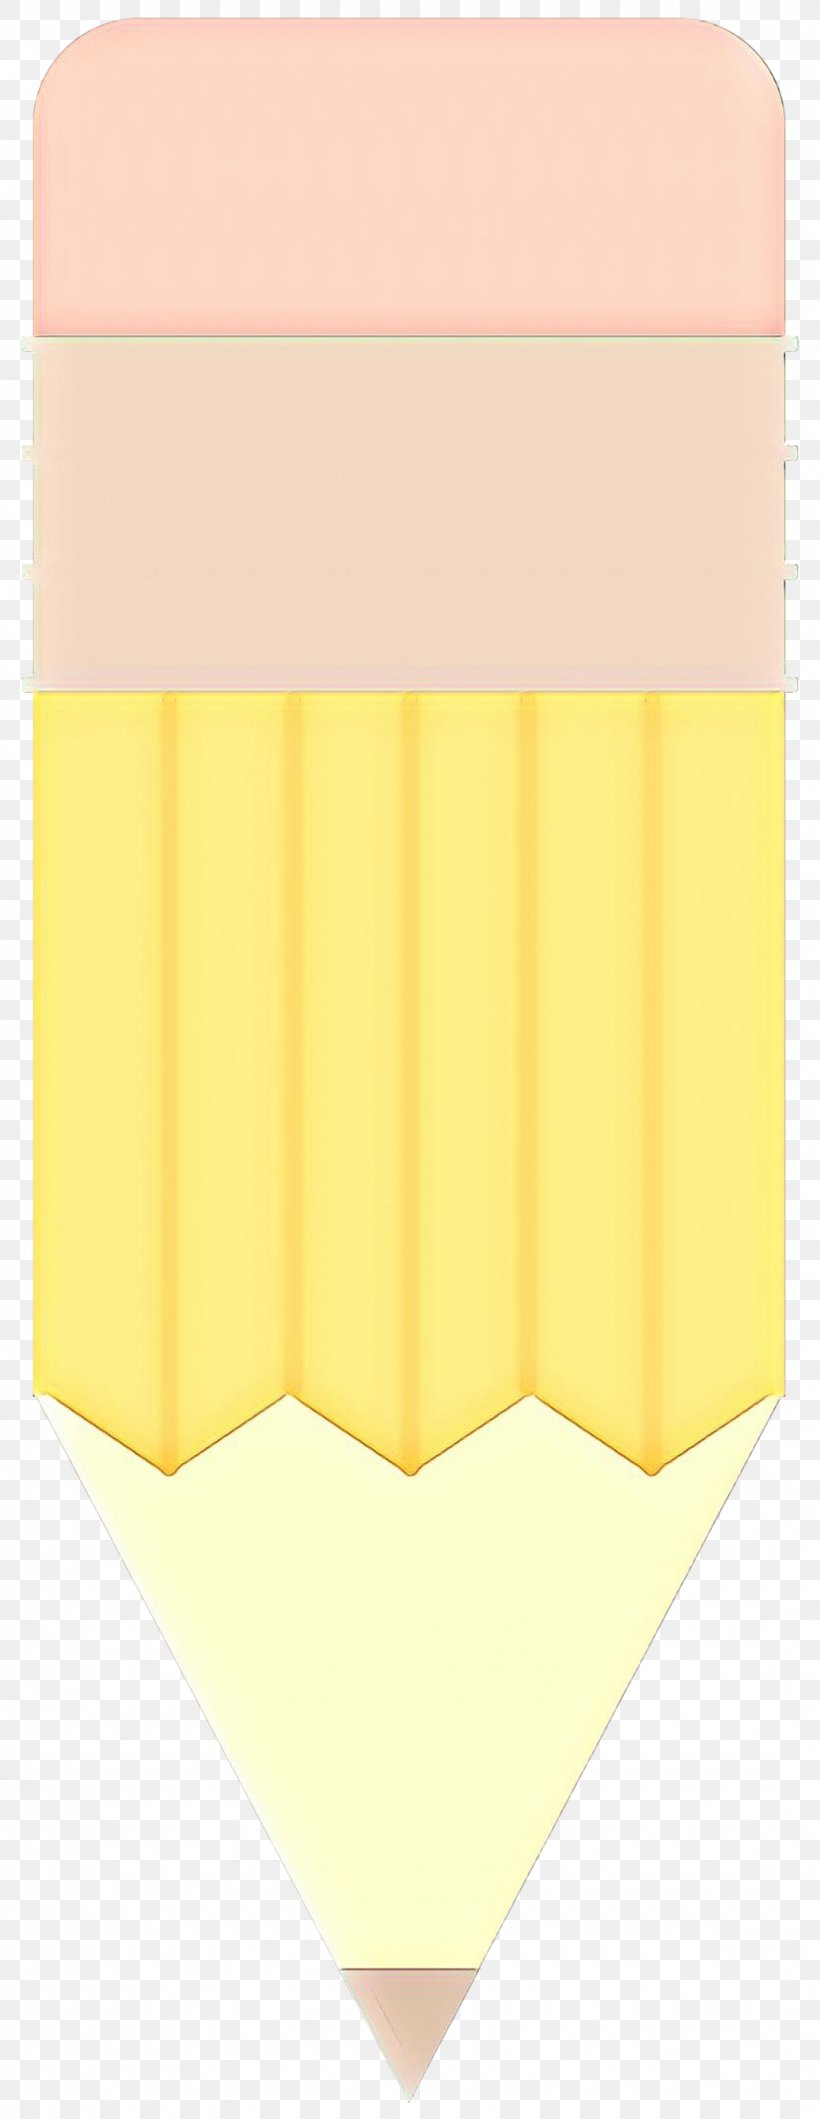 Yellow Beige Rectangle Paper Paper Product, PNG, 1075x2778px, Cartoon, Beige, Paper, Paper Product, Rectangle Download Free